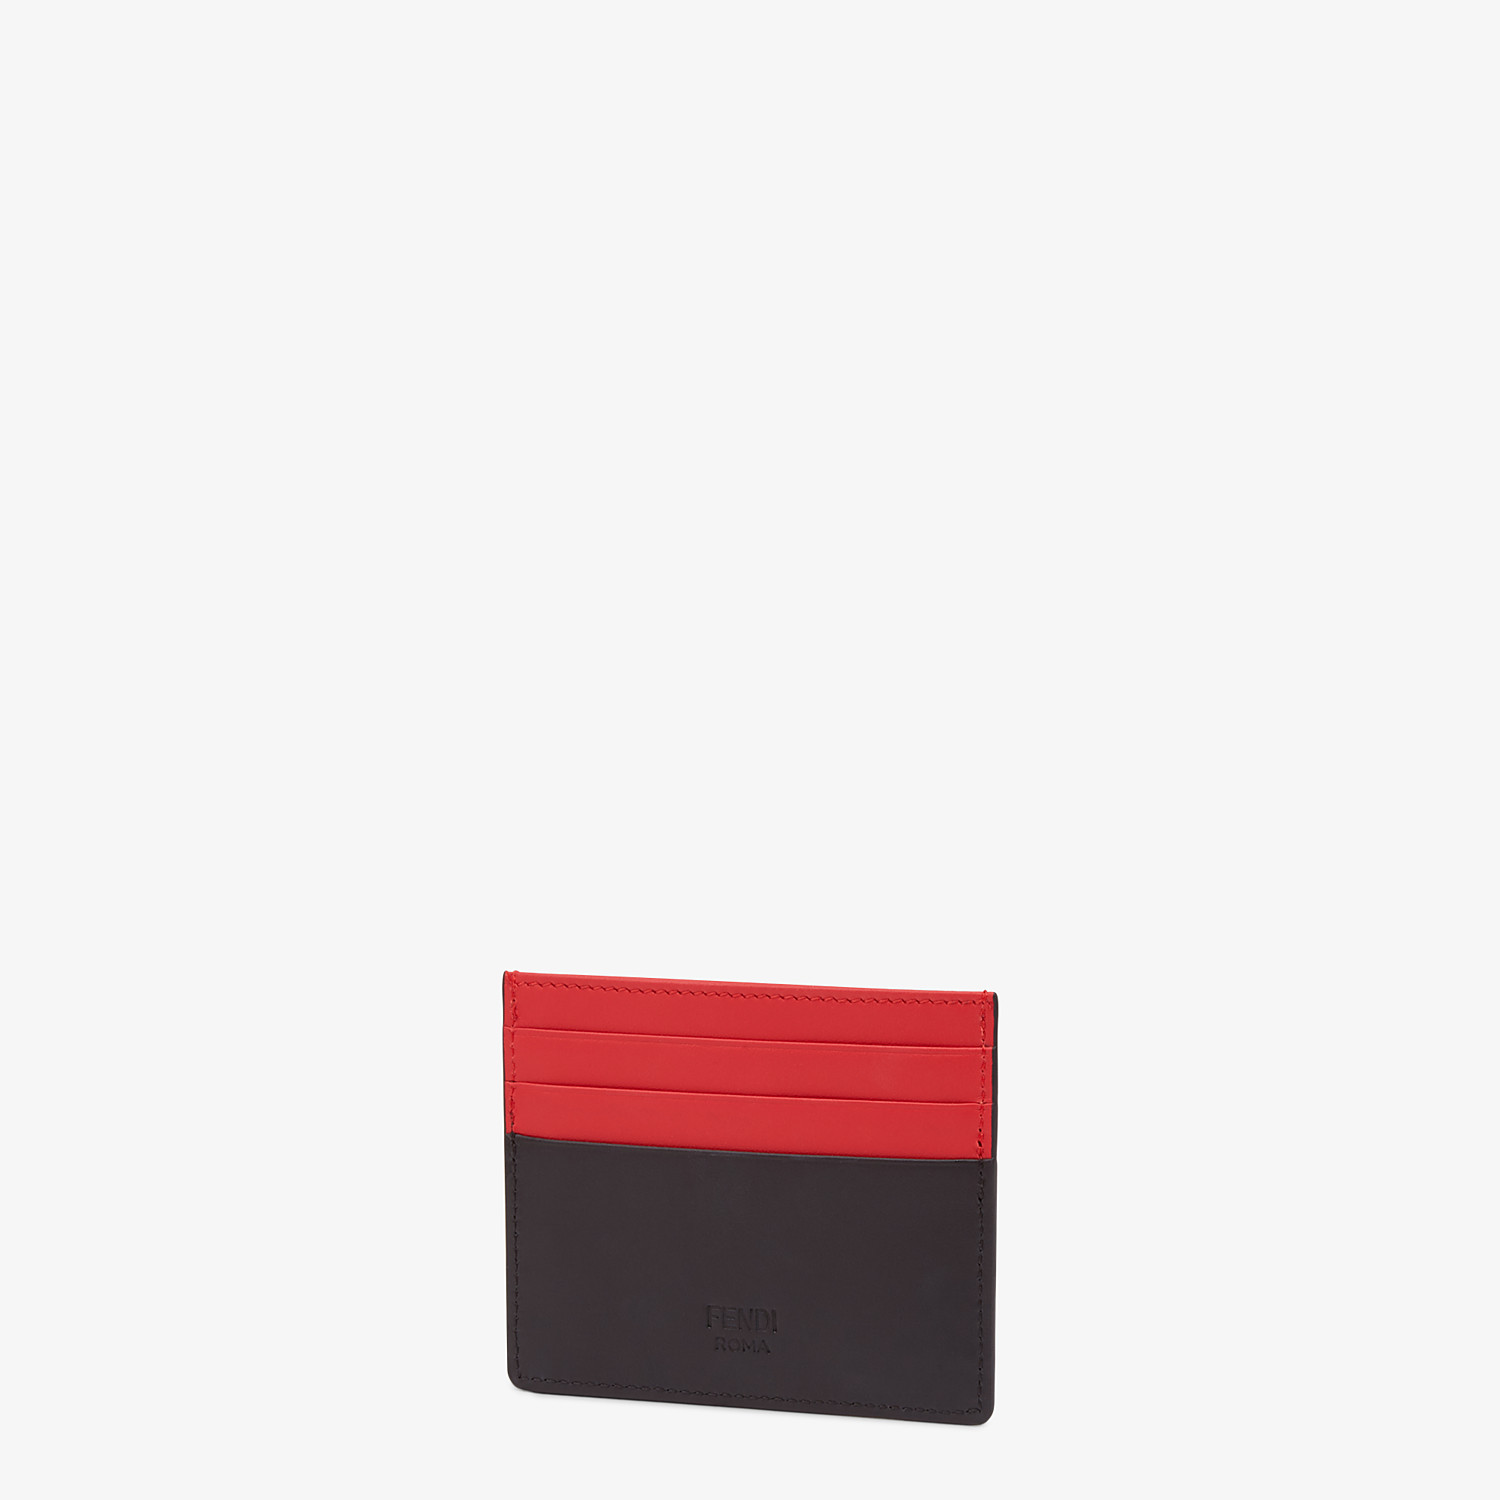 FENDI CARD HOLDER - Multicolor card case - view 2 detail